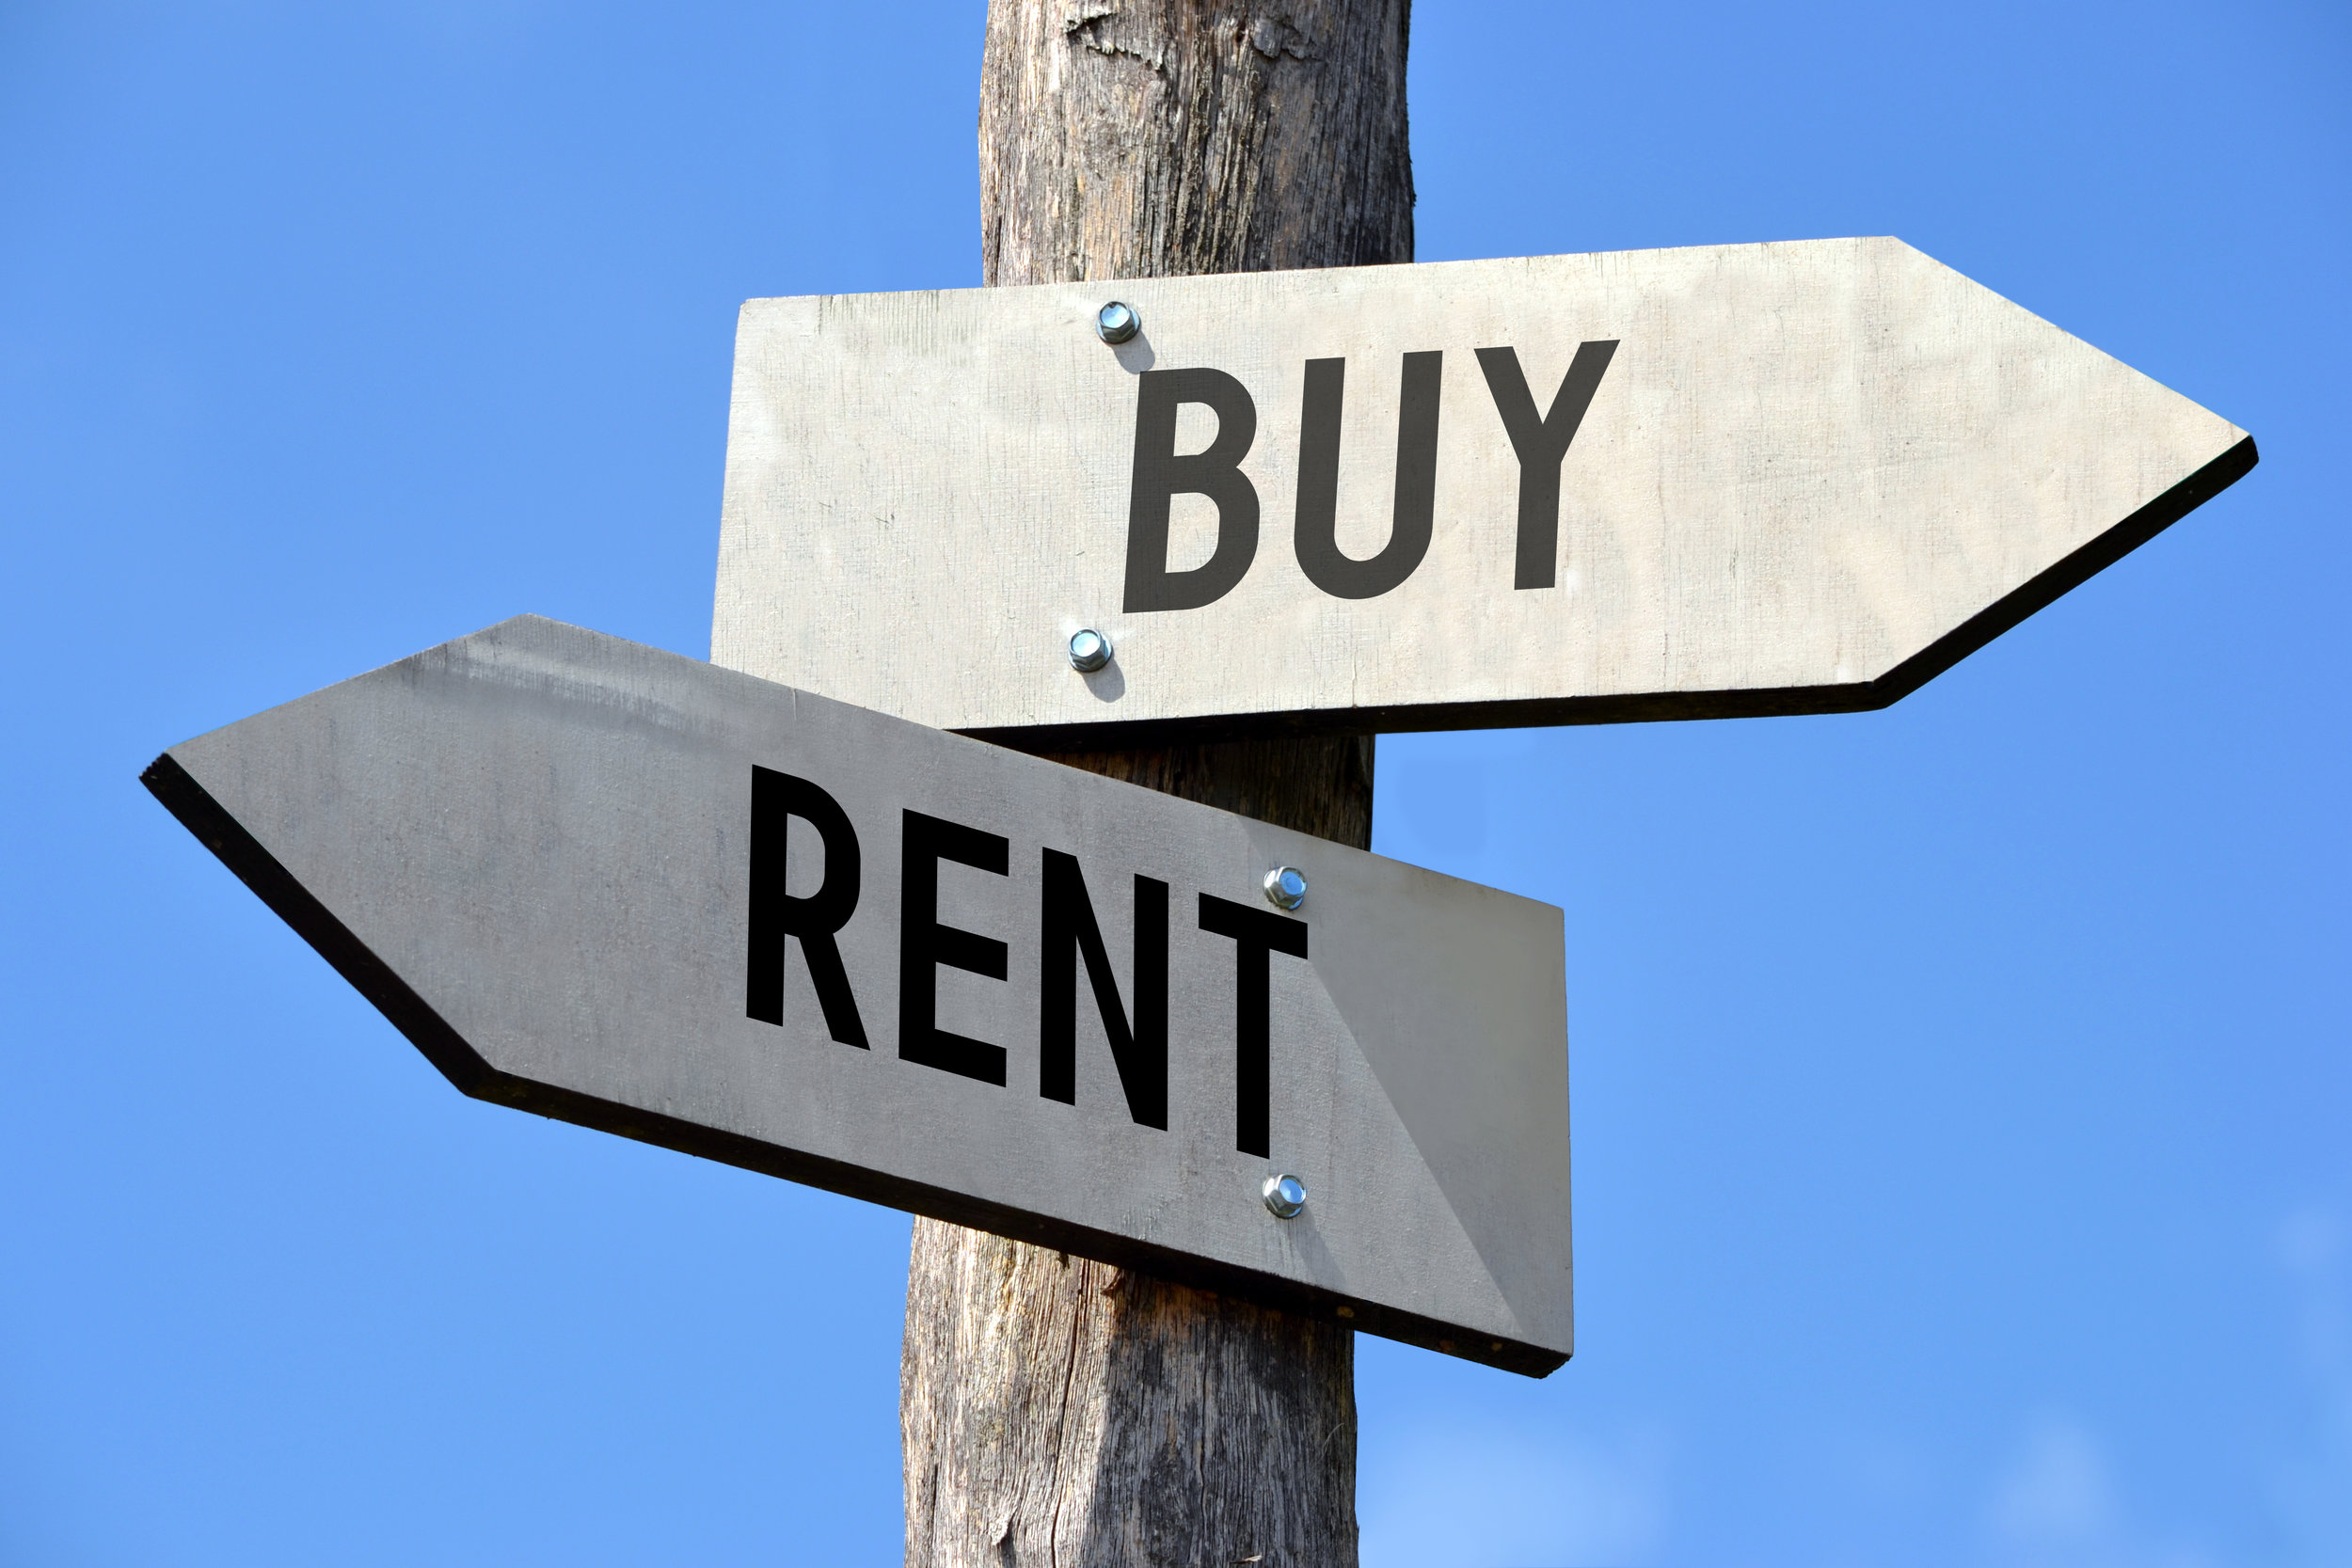 Stable ownership and rental is split evenly in Europe